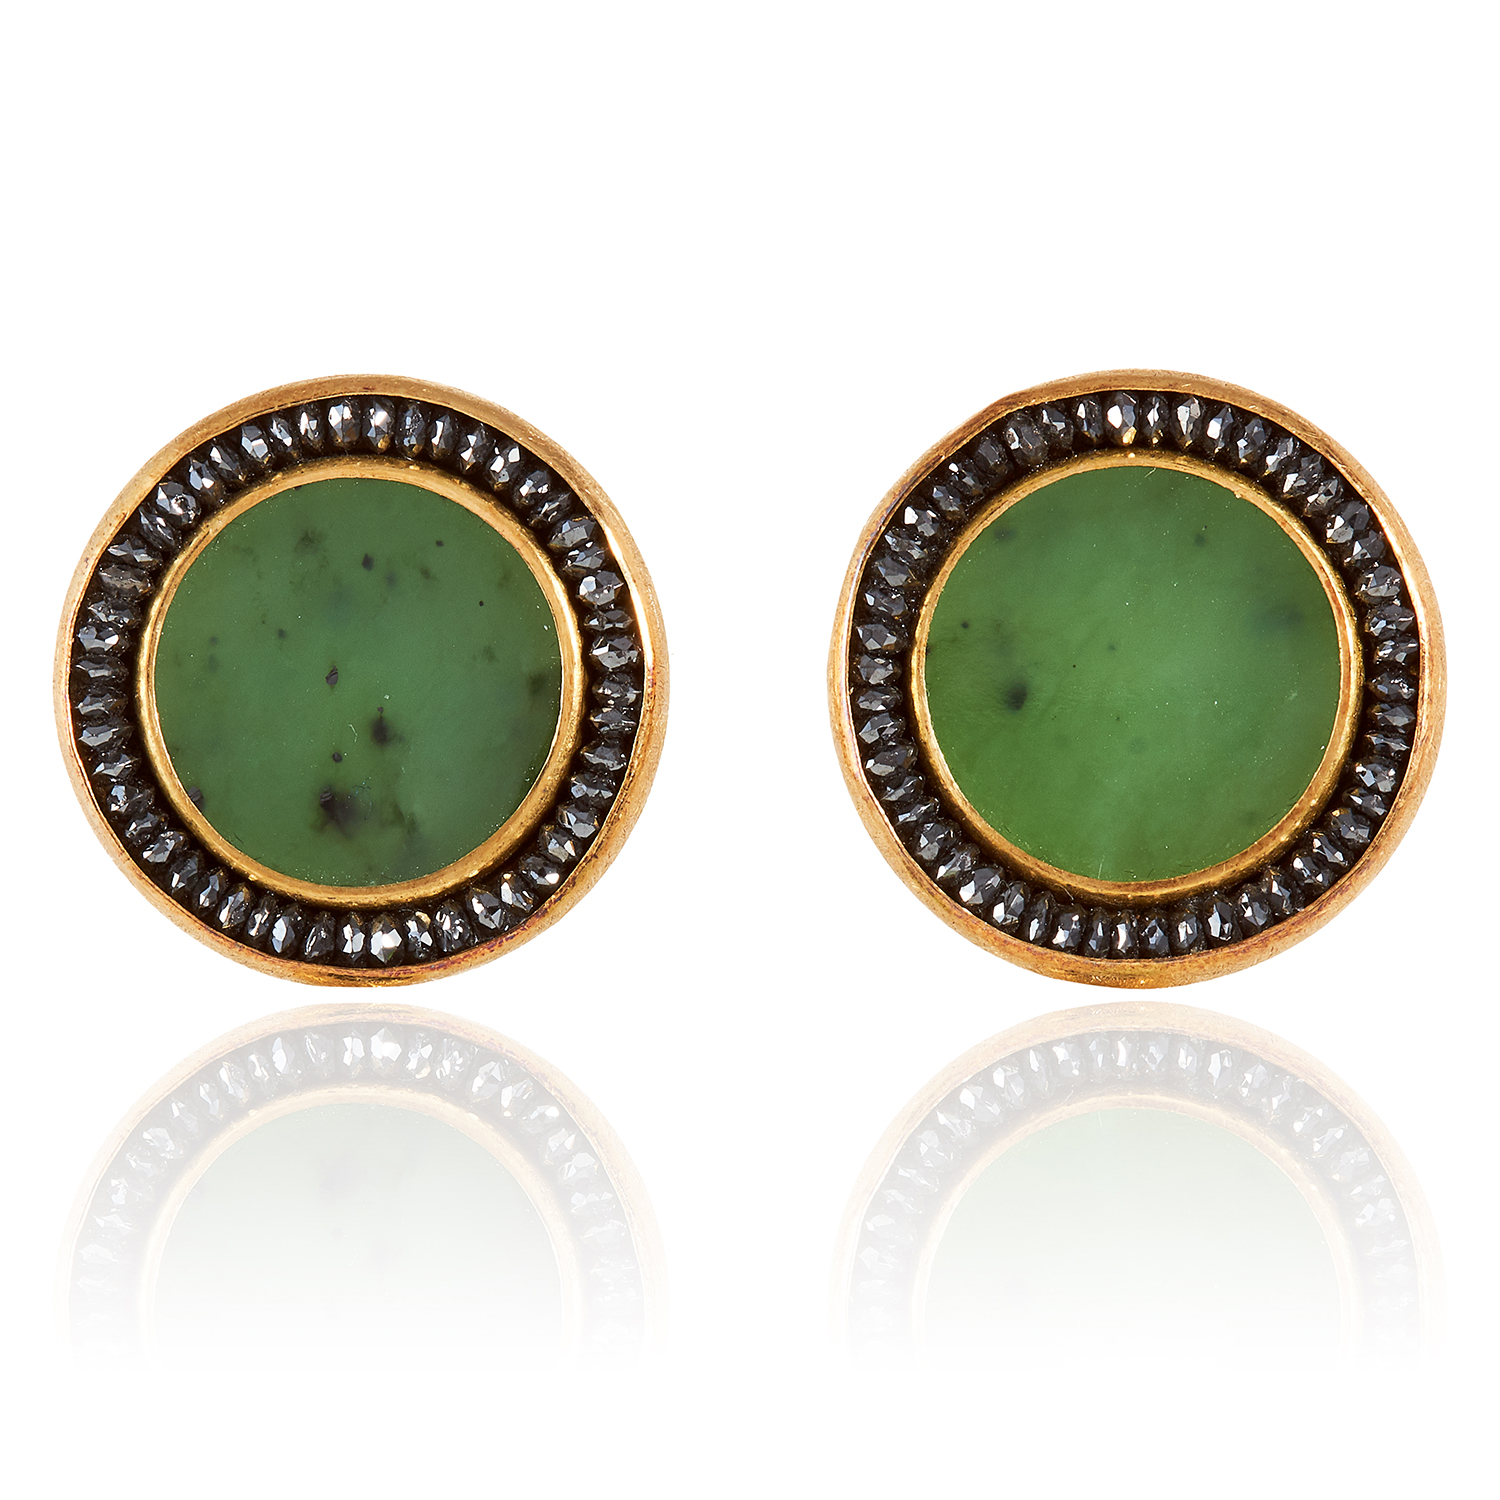 A PAIR OF NEPHRITE JADE AND BLACK DIAMOND DAY AND NIGHT EARRINGS, ZOBEL 2011 in 18ct yellow gold, - Image 2 of 2